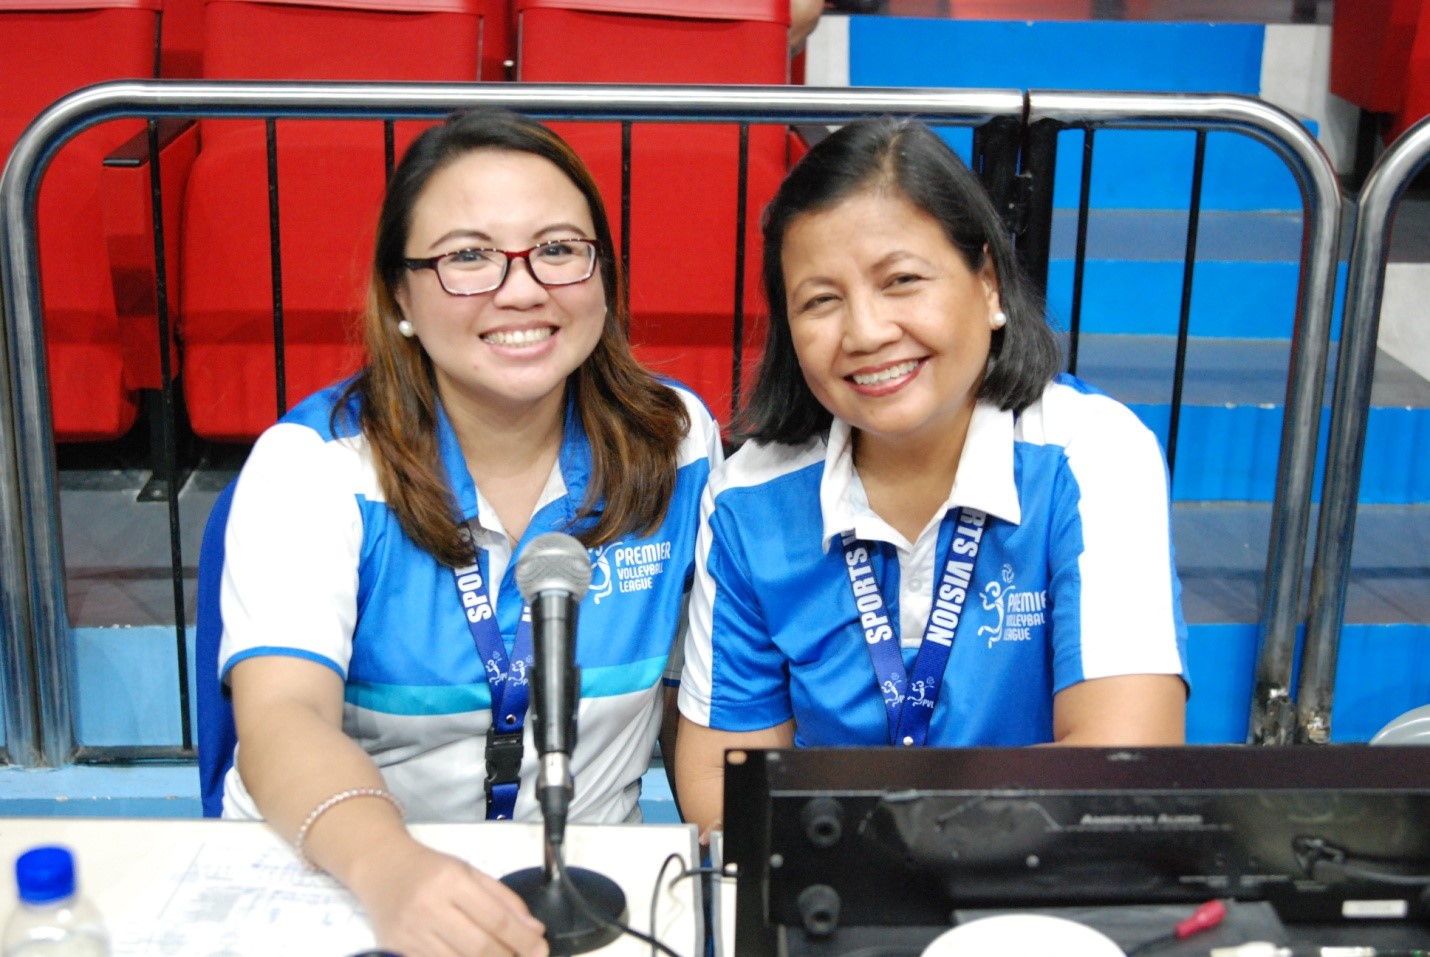 Mac and Kris: A pair of sweet-voiced court announcers